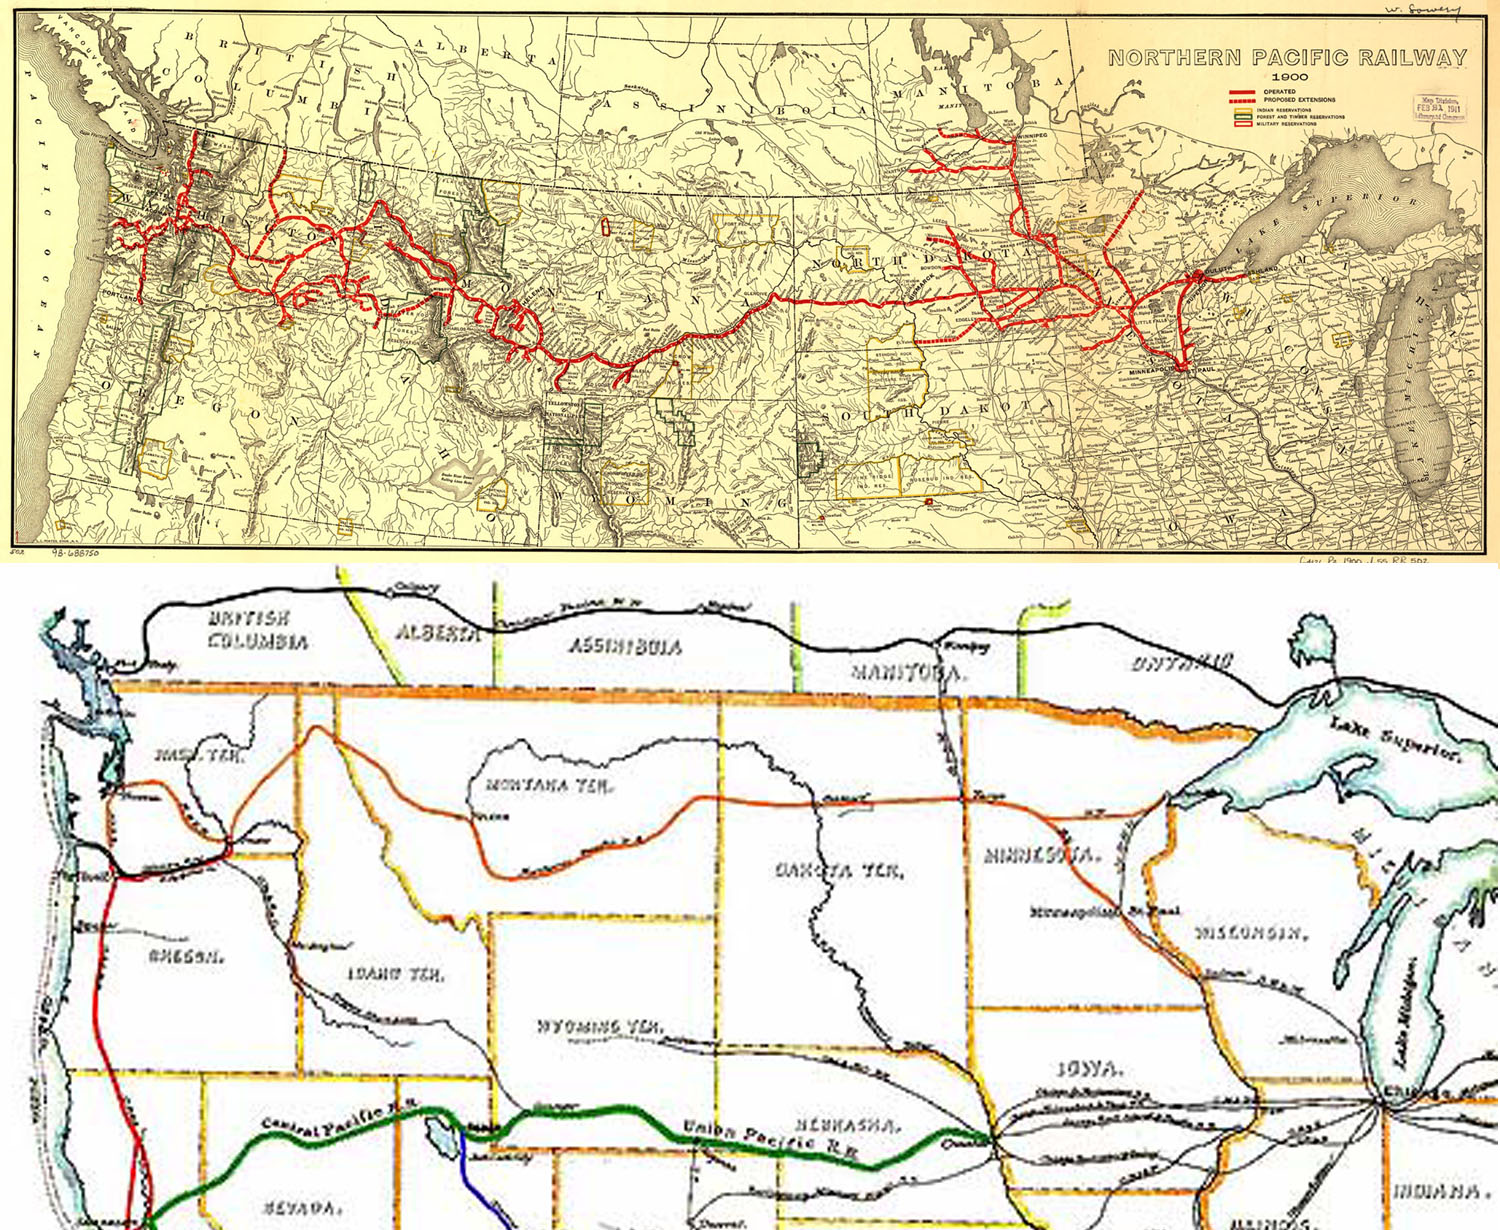 Excellent Minnesota Railroad Map Swimnovacom - Map of us railroads in 1900